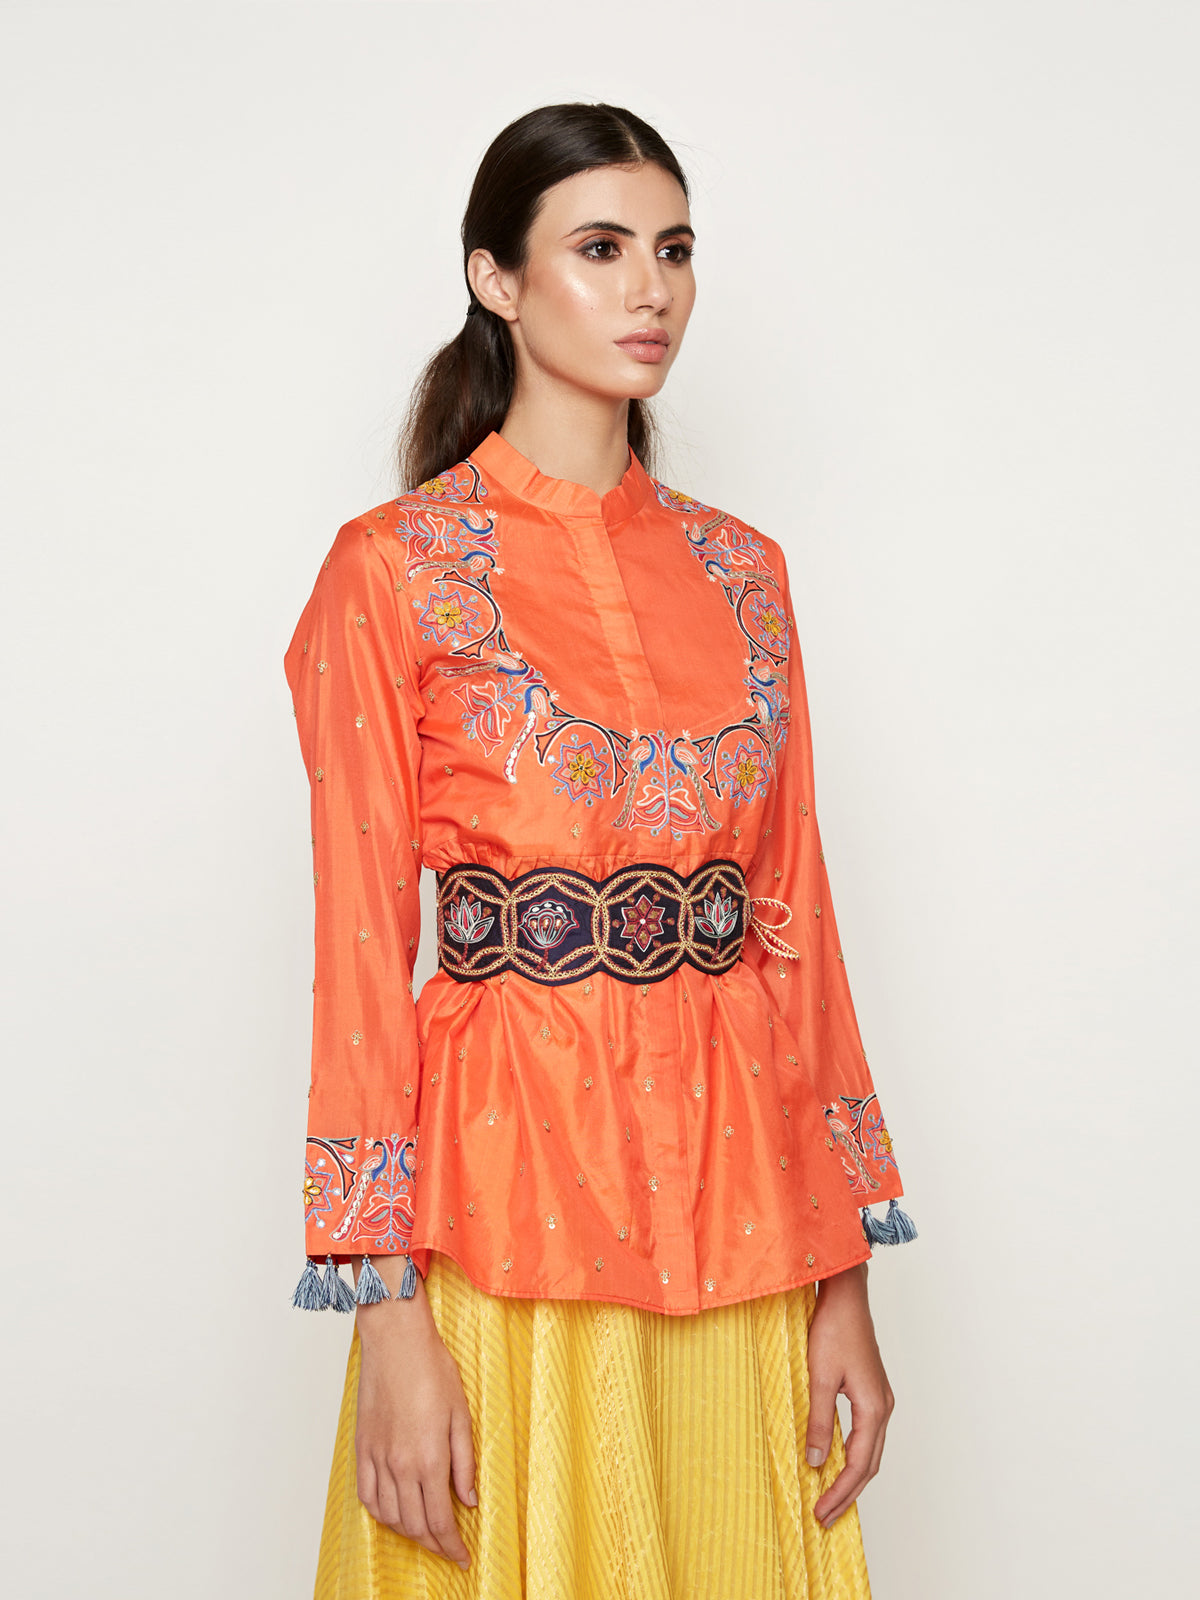 MORBAGH EMBROIDERED JACKET WITH ASYMMETRICAL SUNHERI CHANDERI DRESS